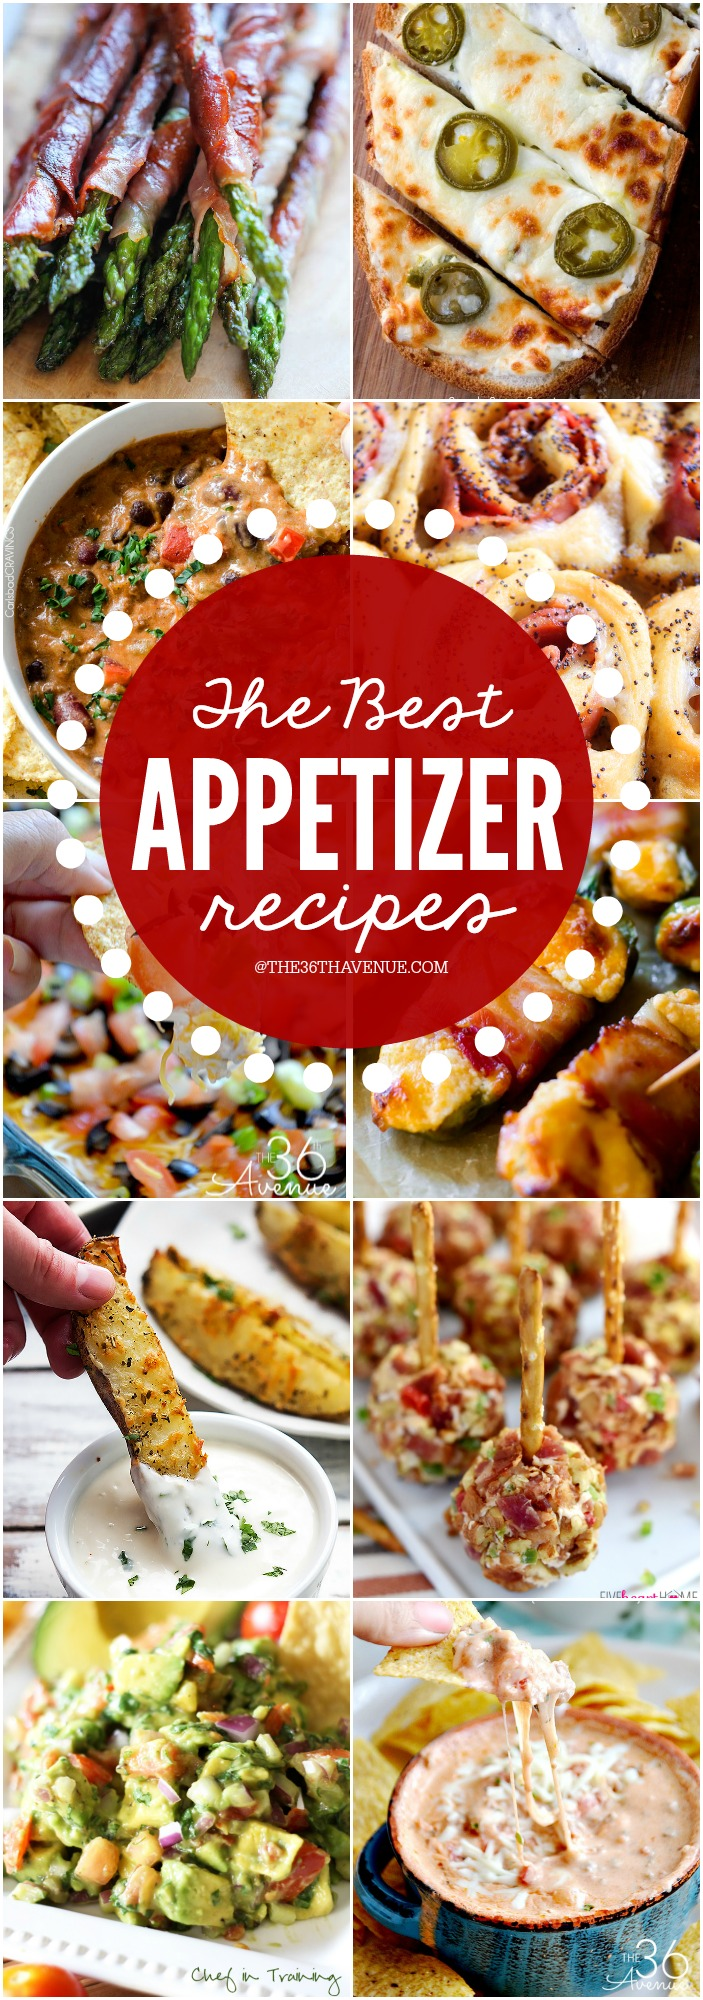 Appetizer-Recipes-by-the36thavenue.com_